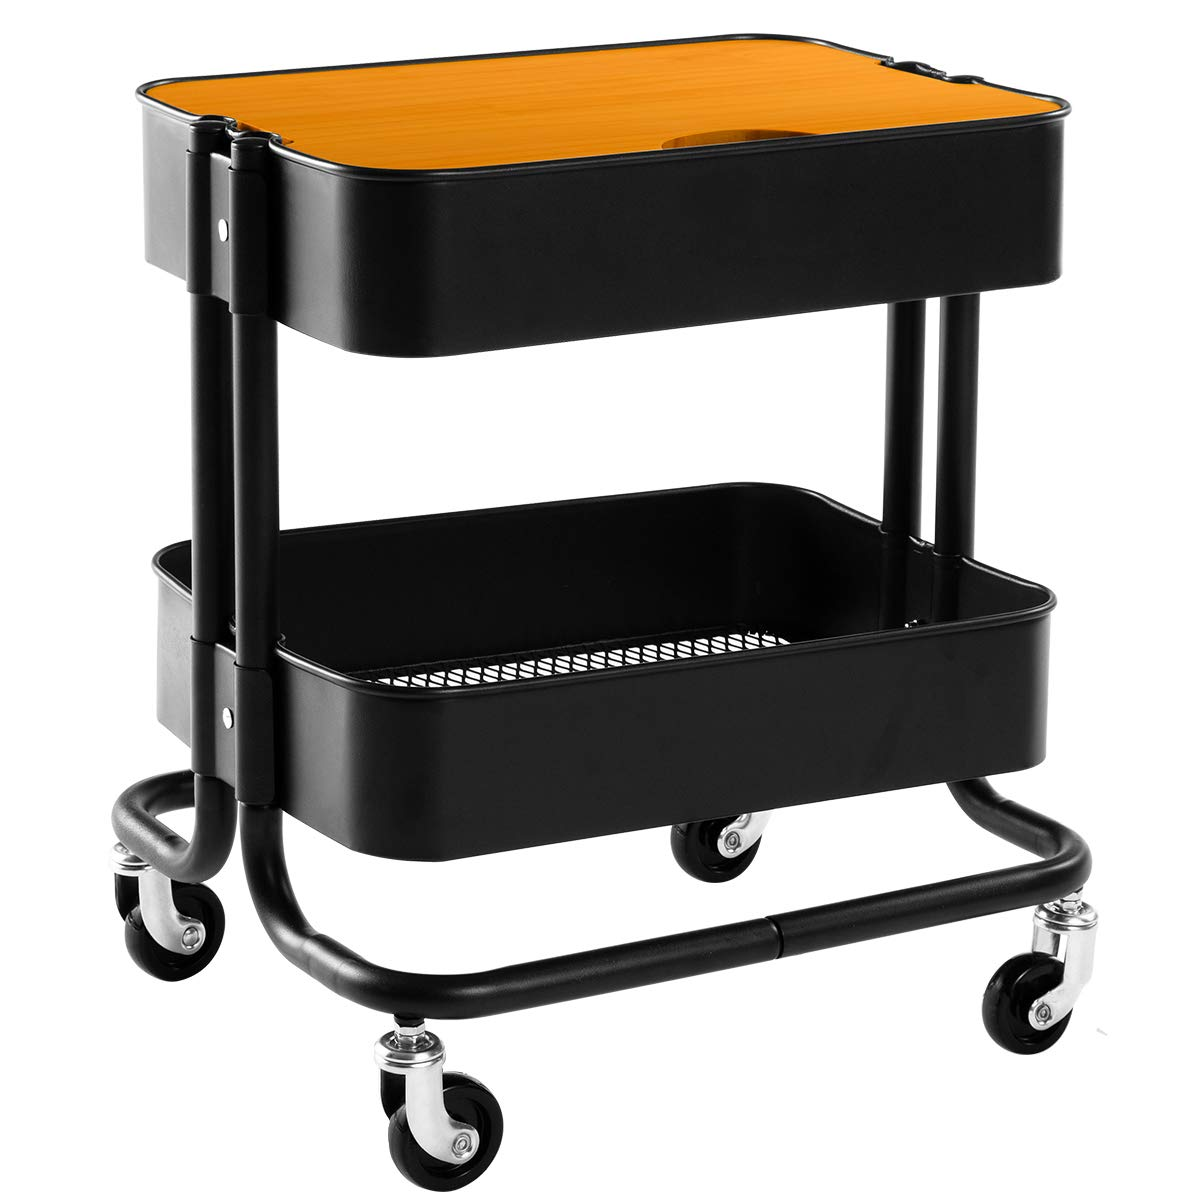 HollyHOME 2-Tier Metal Utility Service Cart Rolling Storage Shelves with Planks, Black Movable Storage Utility Cart